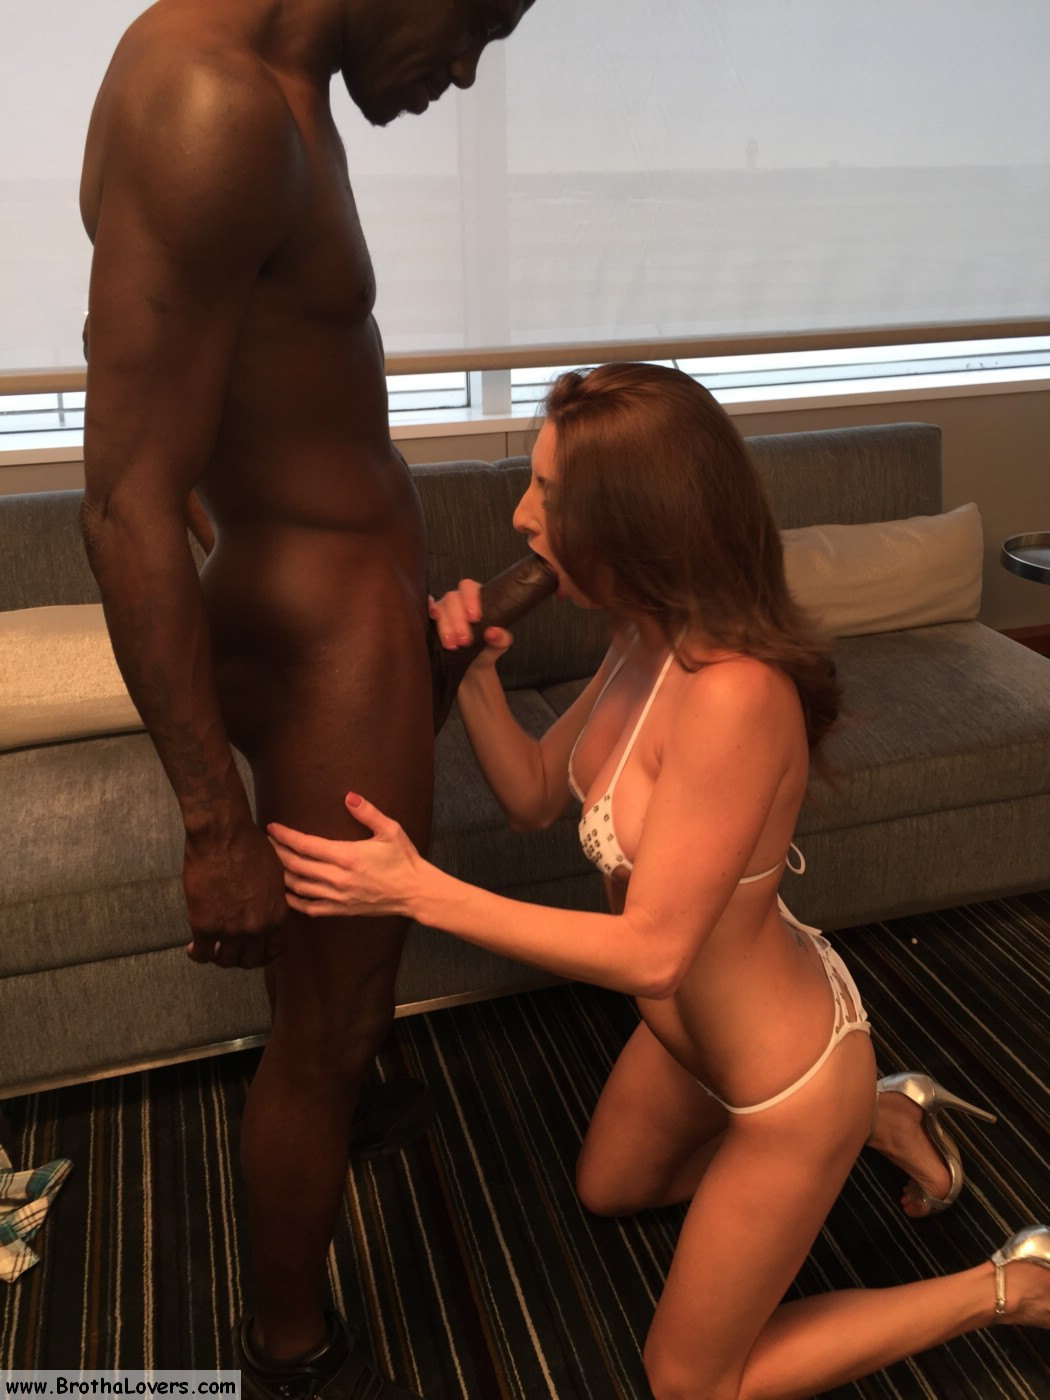 Wcp club big black cock pounds madison rose juicy booty - 2 1